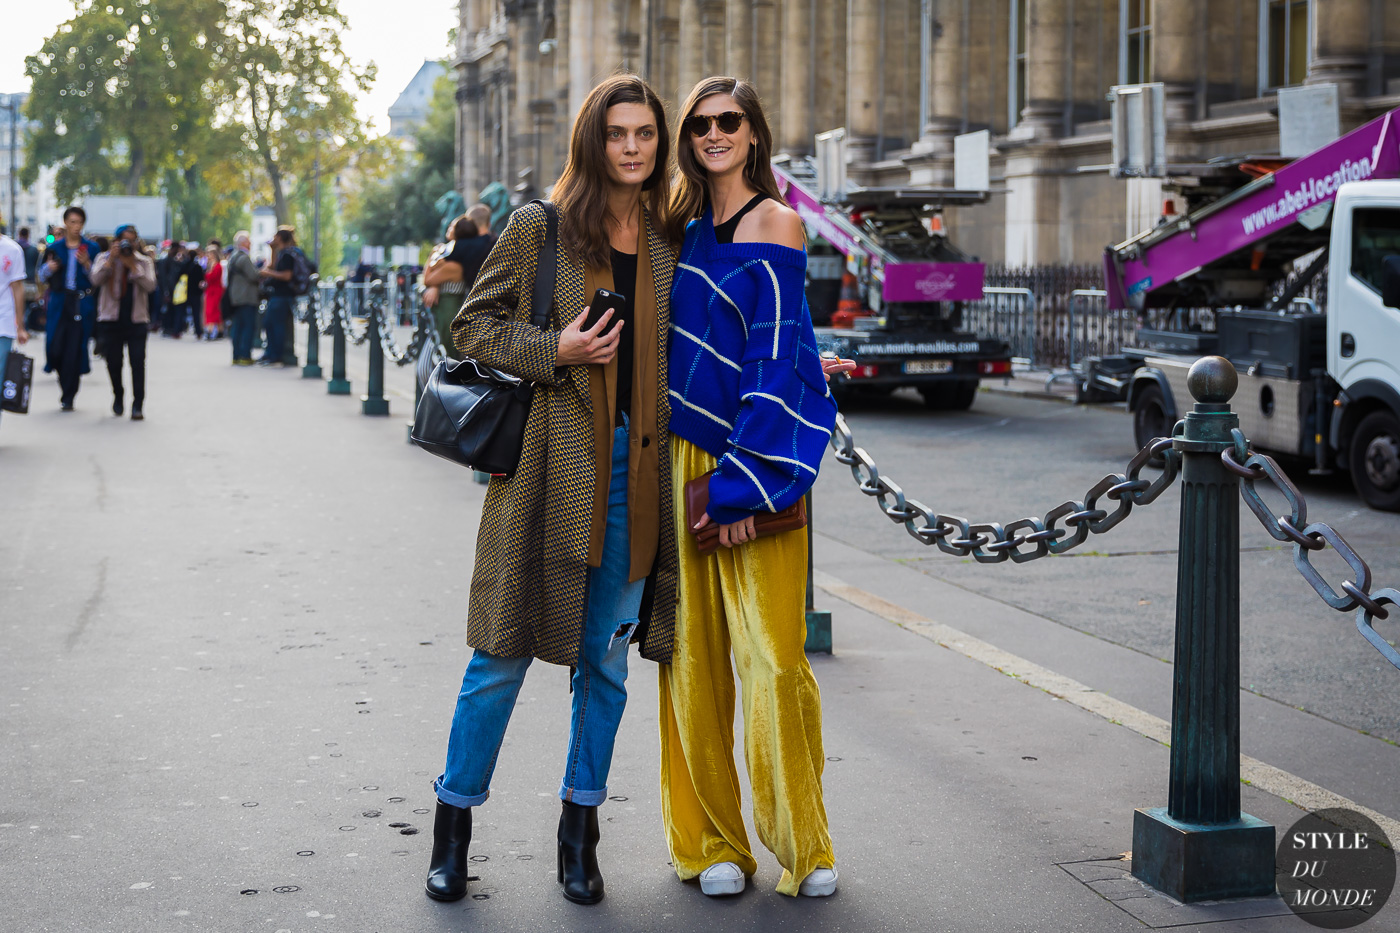 Marina Perez and Daiane Conterato by STYLEDUMONDE Street Style Fashion Photography_48A6828